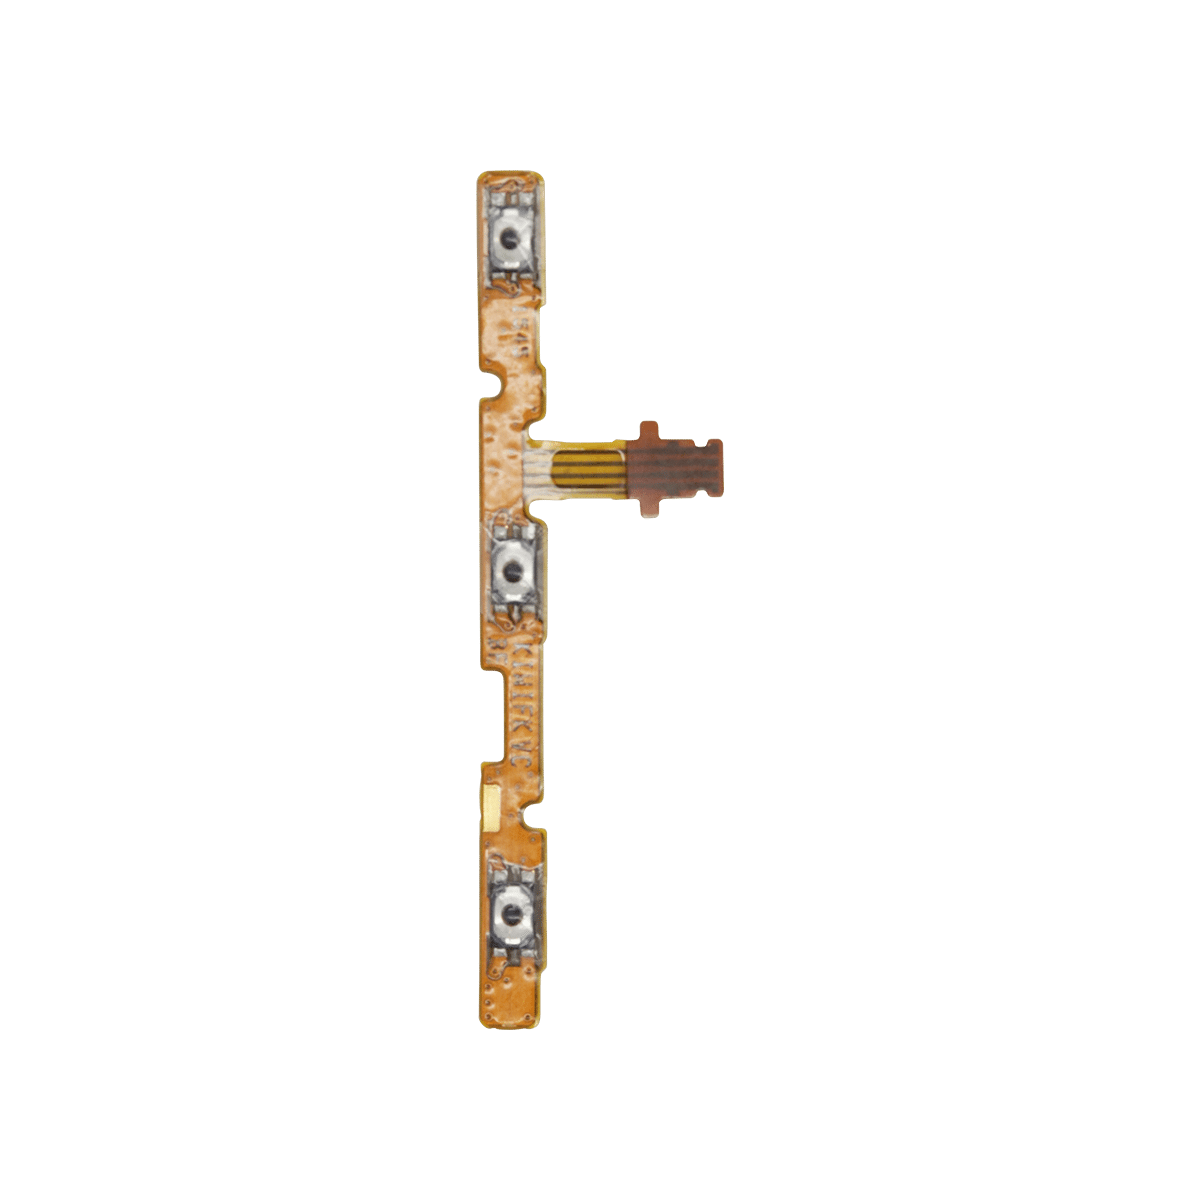 Huawei Honor 5X Power & Volume Buttons Ribbon Cable Replacement